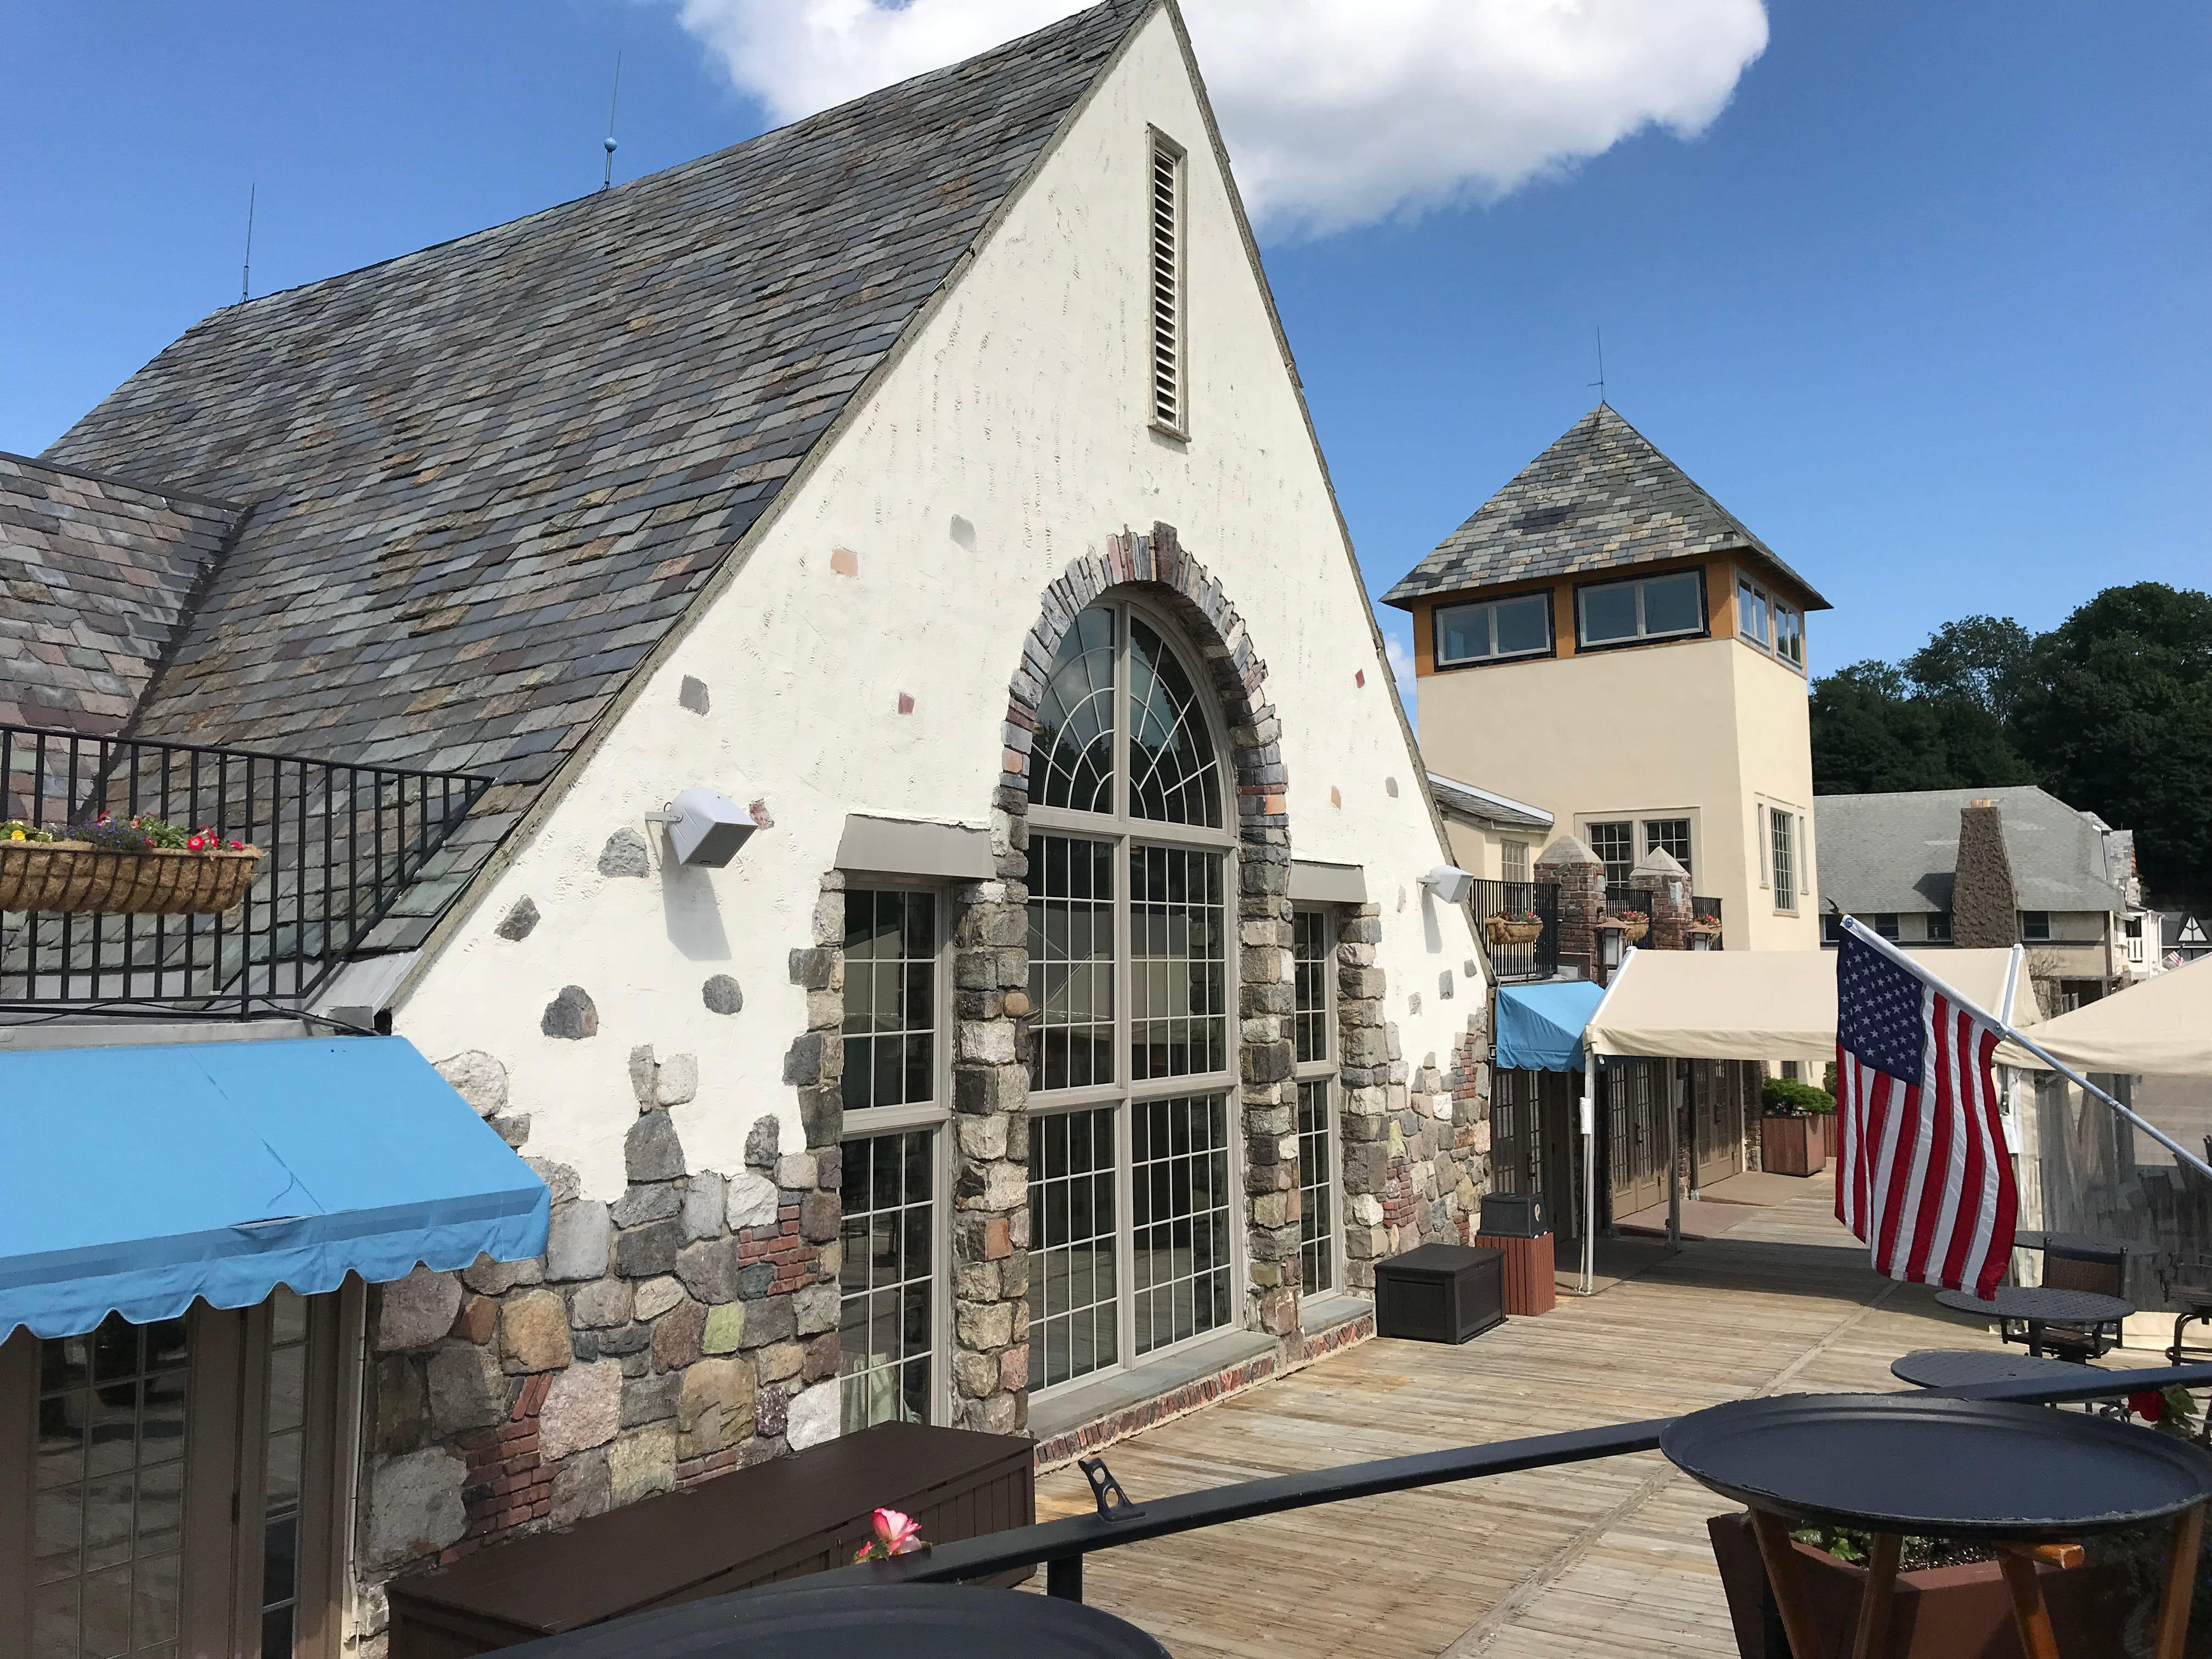 The clubhouse at Lake Mohawk in Sparta, as seen on July 26, 2018, is the centerpiece of a plaza that landed on the National Register of Historic Places and is known for its grand, castle-like appearance.